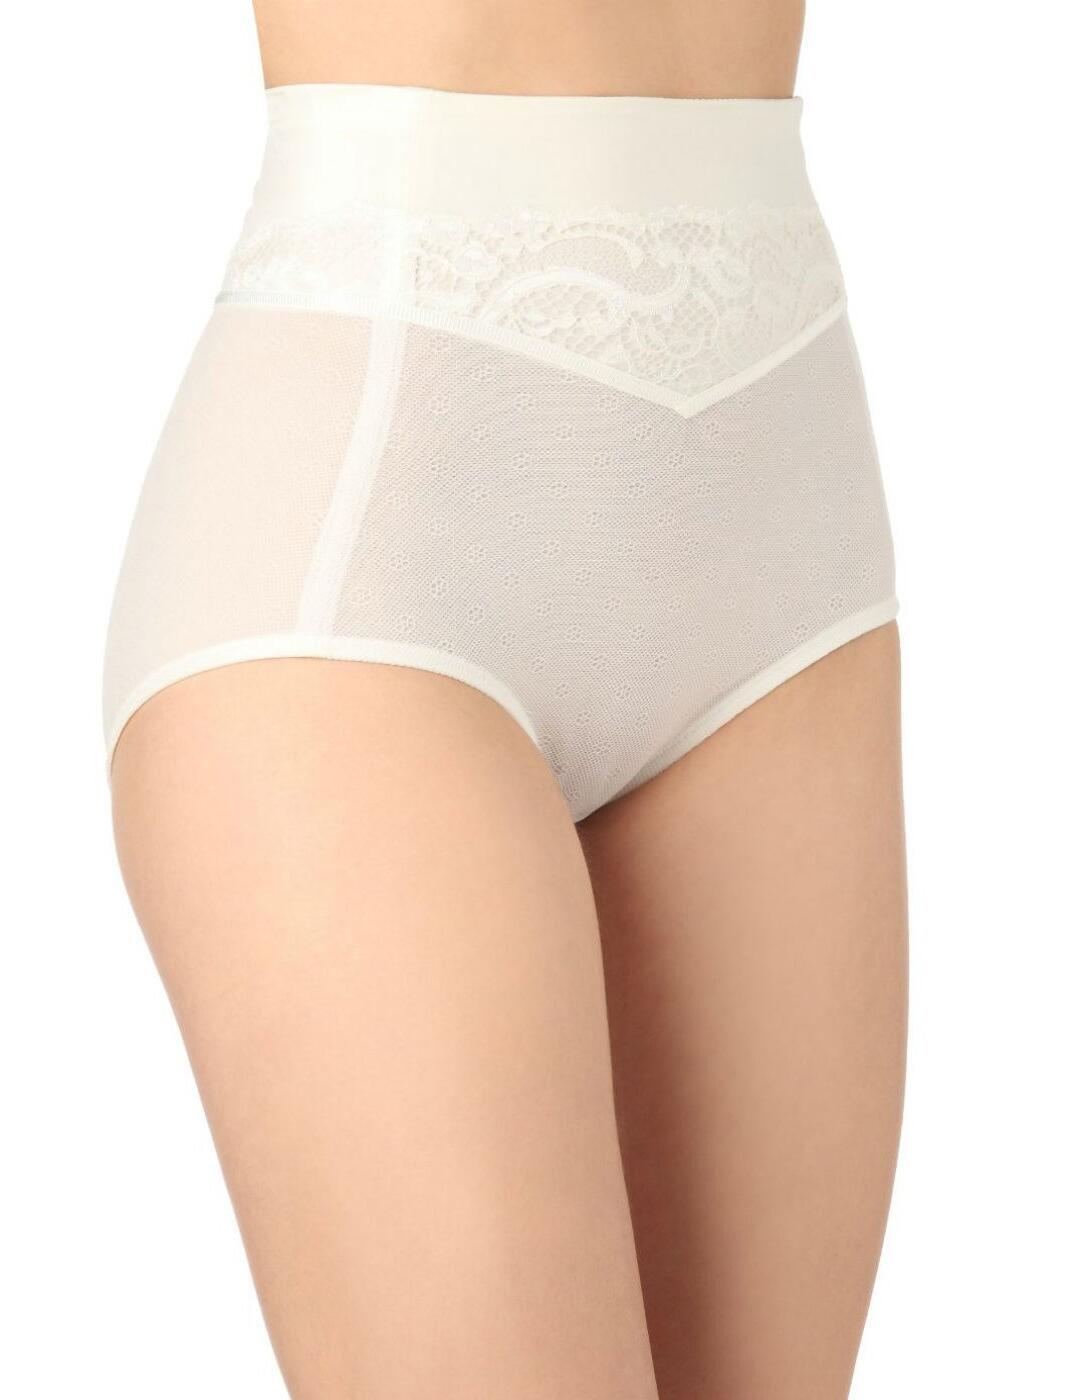 10125584 Triumph Beautiful Sensation Panty Girdle - 10125584 Brief